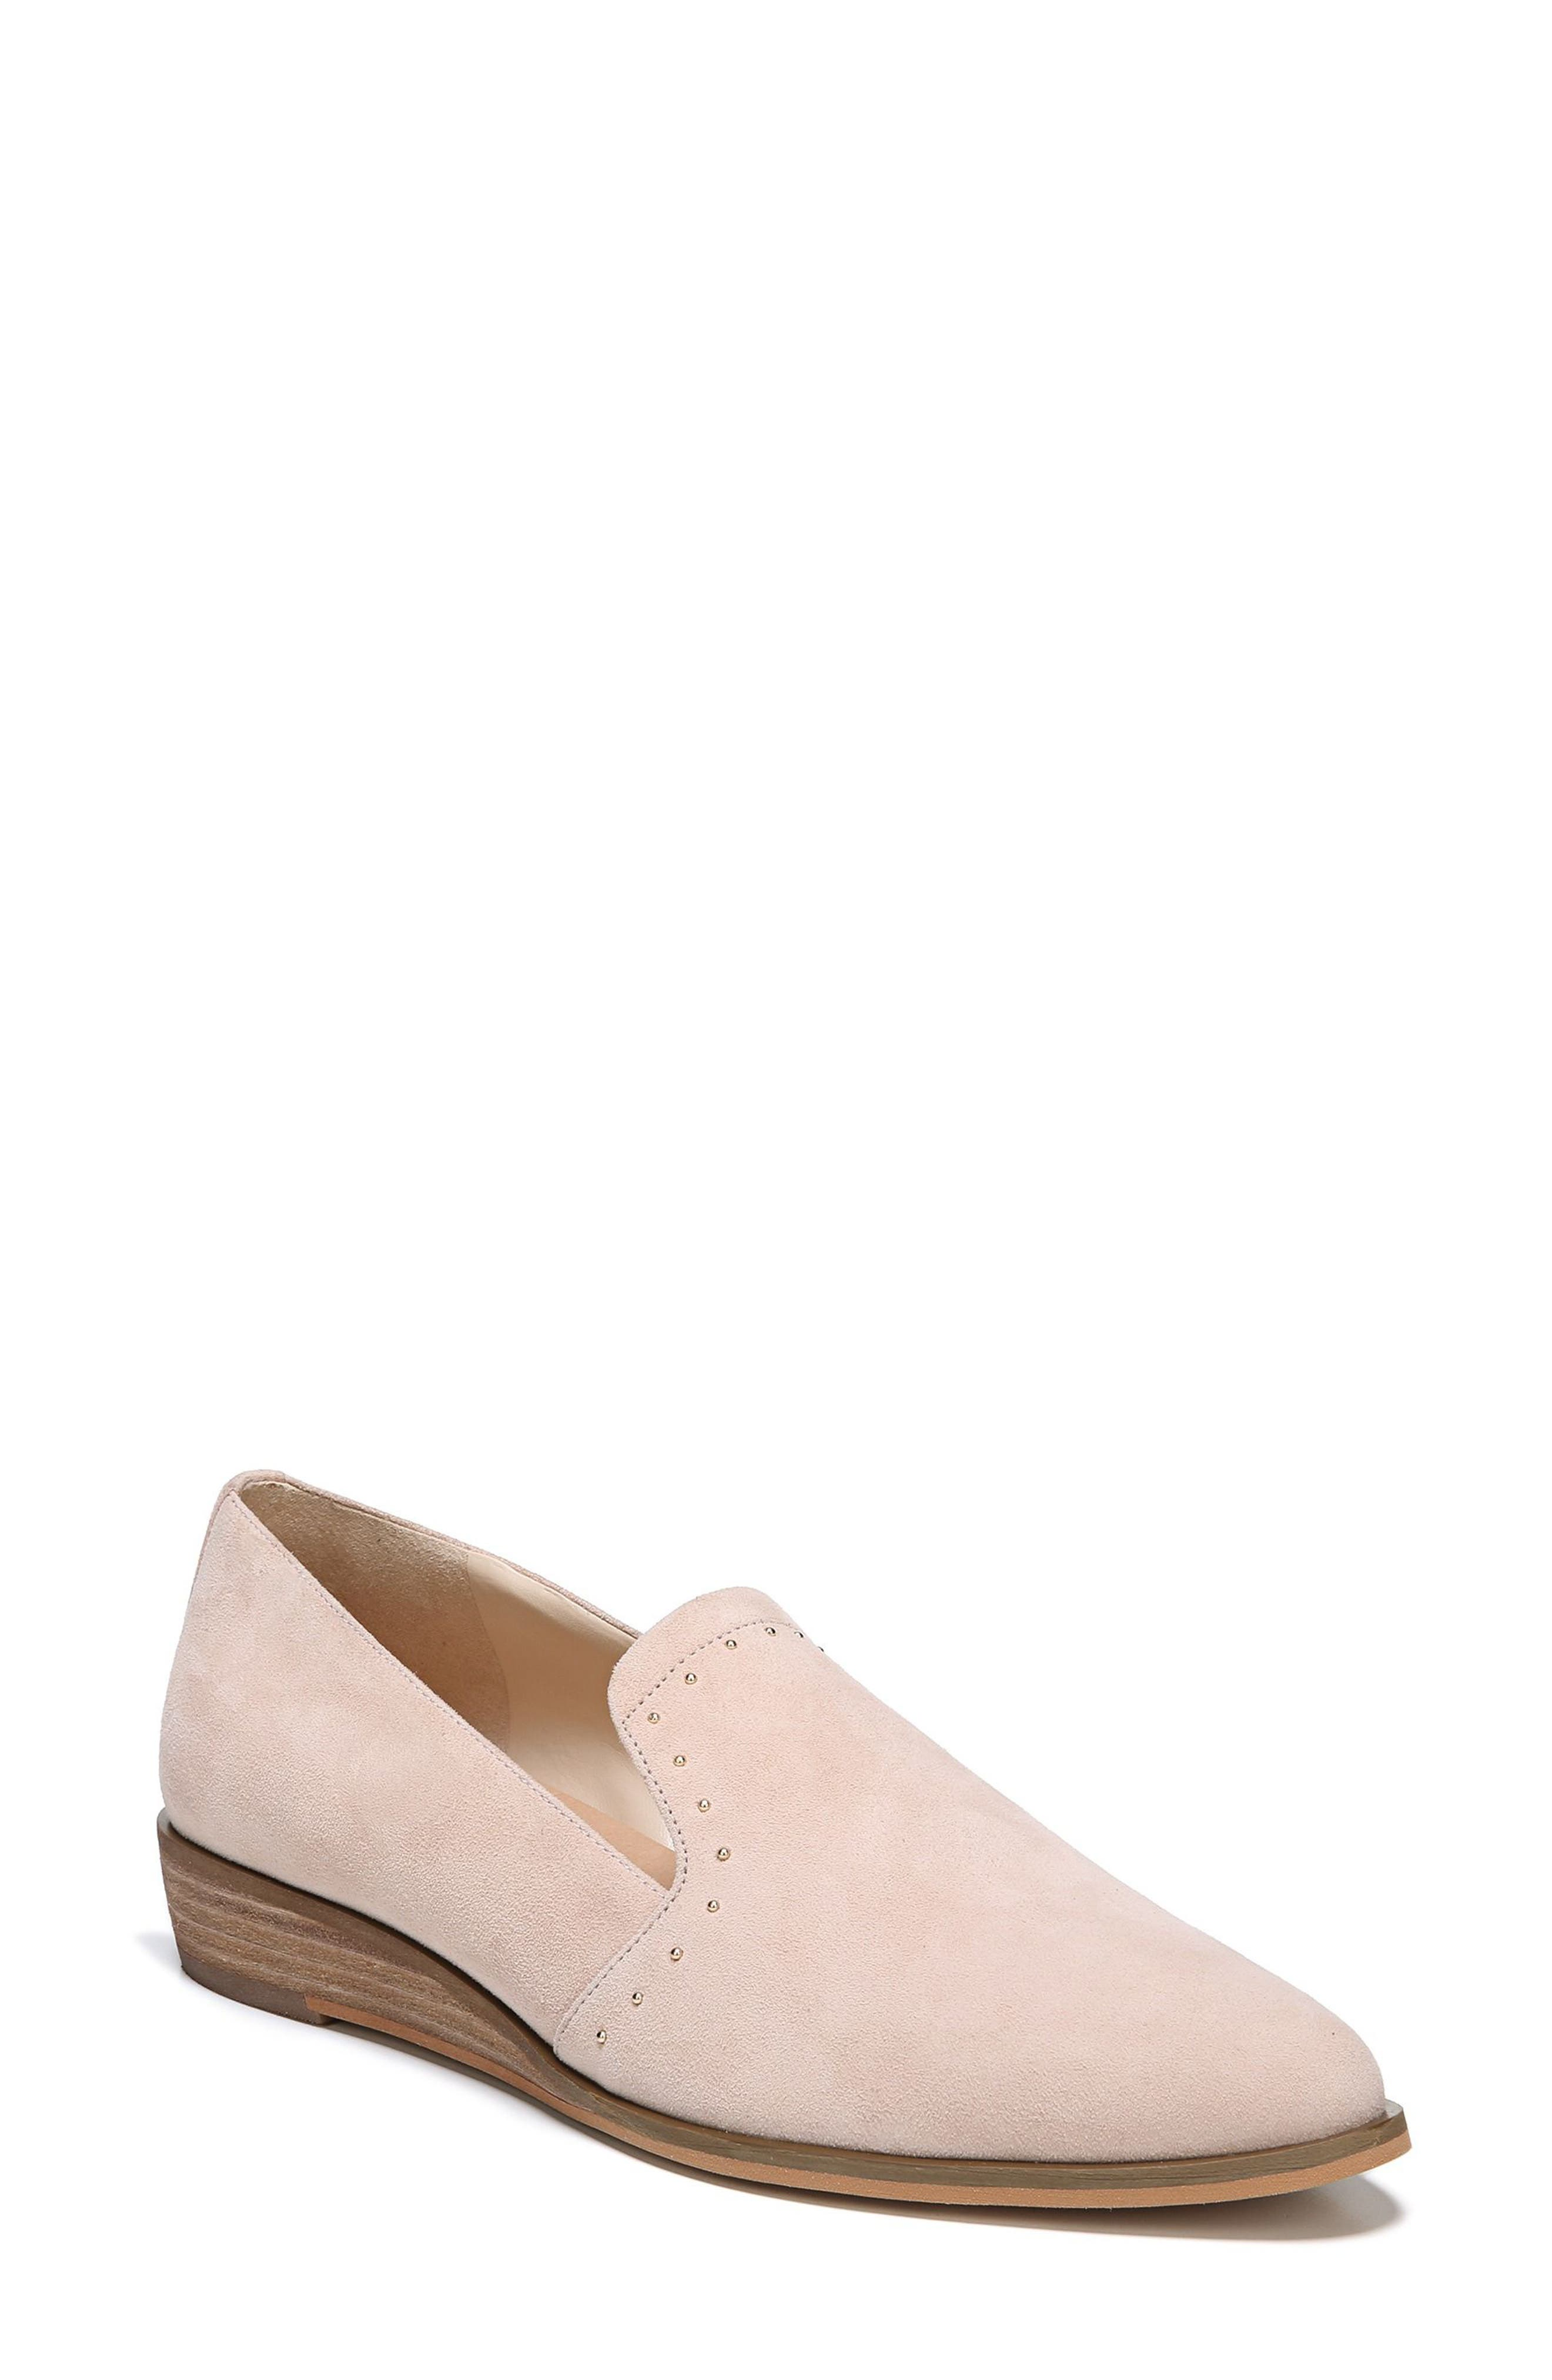 Keane Loafer Wedge,                             Main thumbnail 3, color,